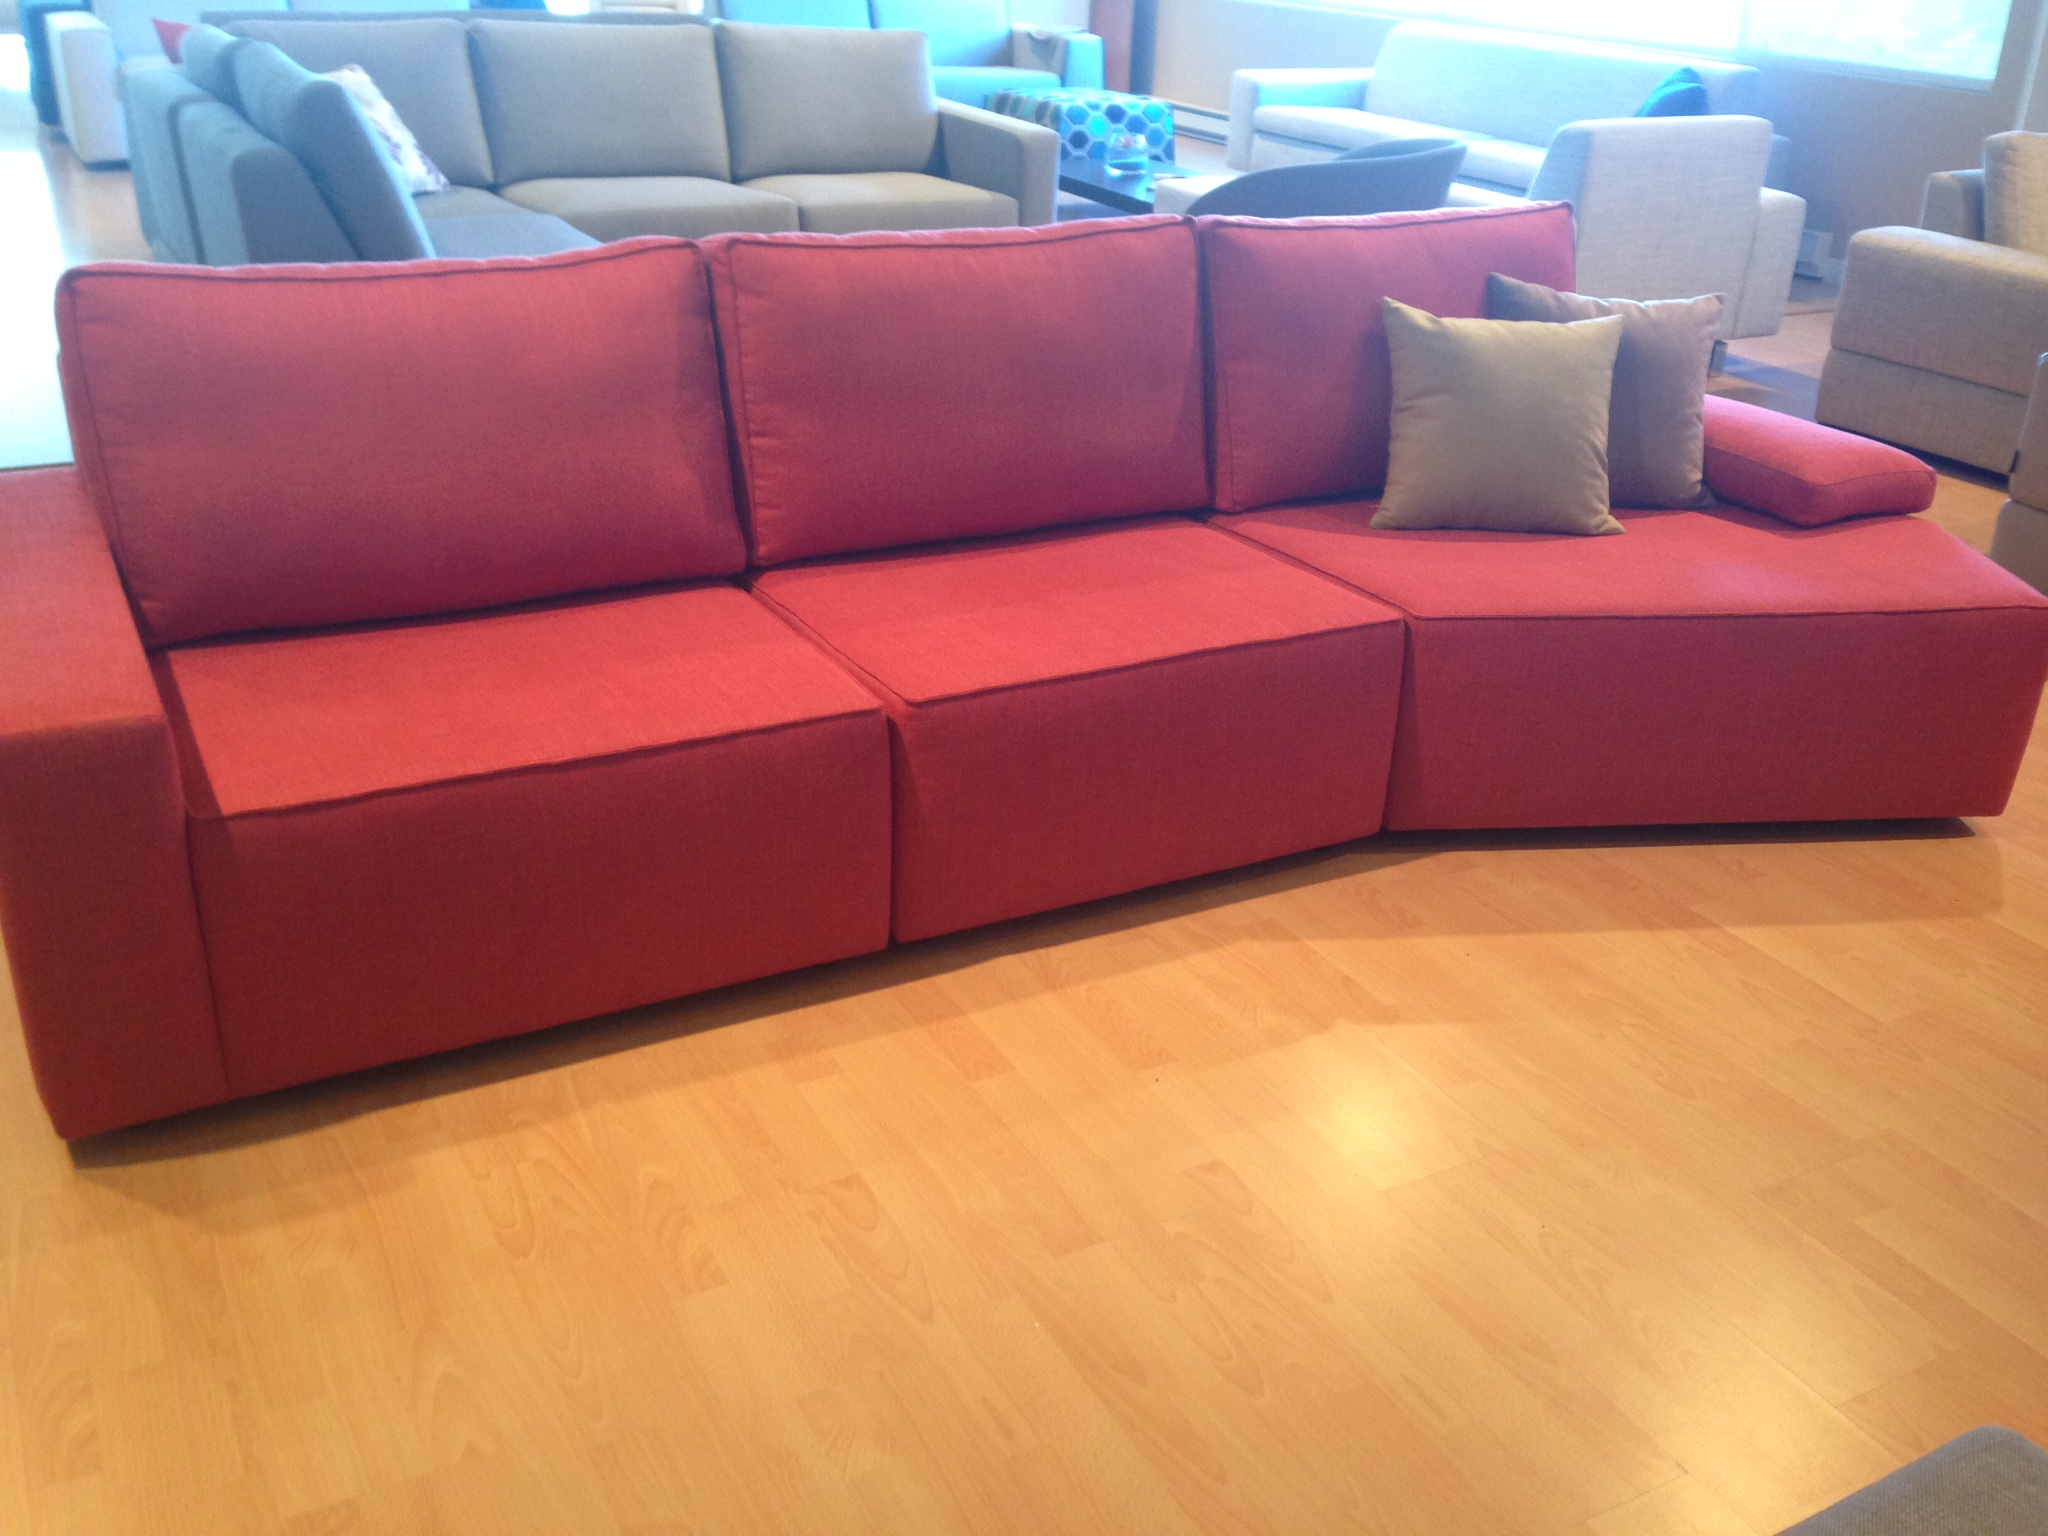 Sectional Sofas Montreal On Sale Qubik Modular Sectional - Mikaza Meubles Modernes Montreal